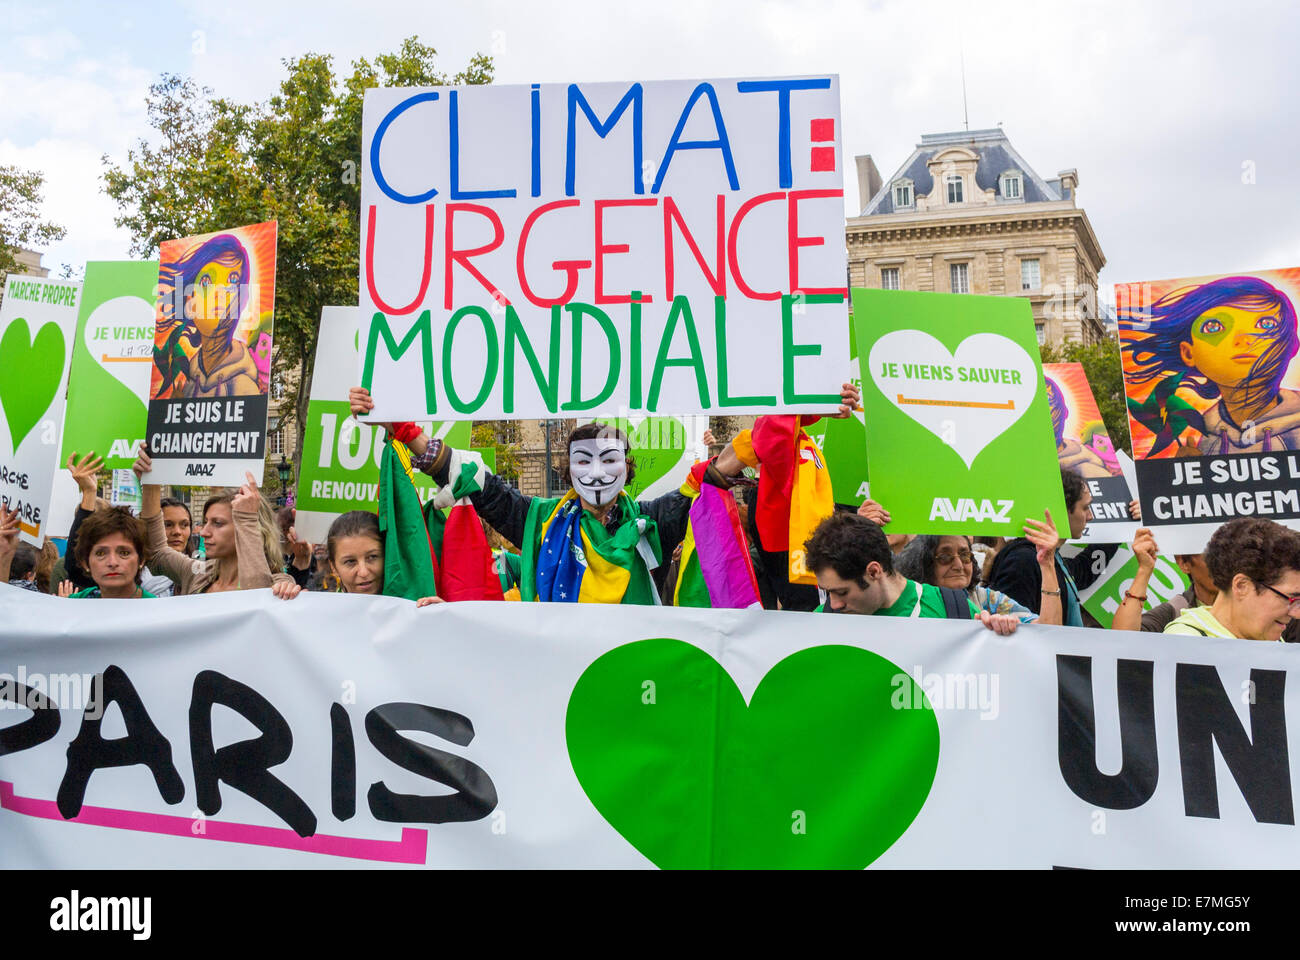 Paris, France. Crowd Holding French protest poster and Banners at  Public Demonstration, International Climate Change - Stock Image